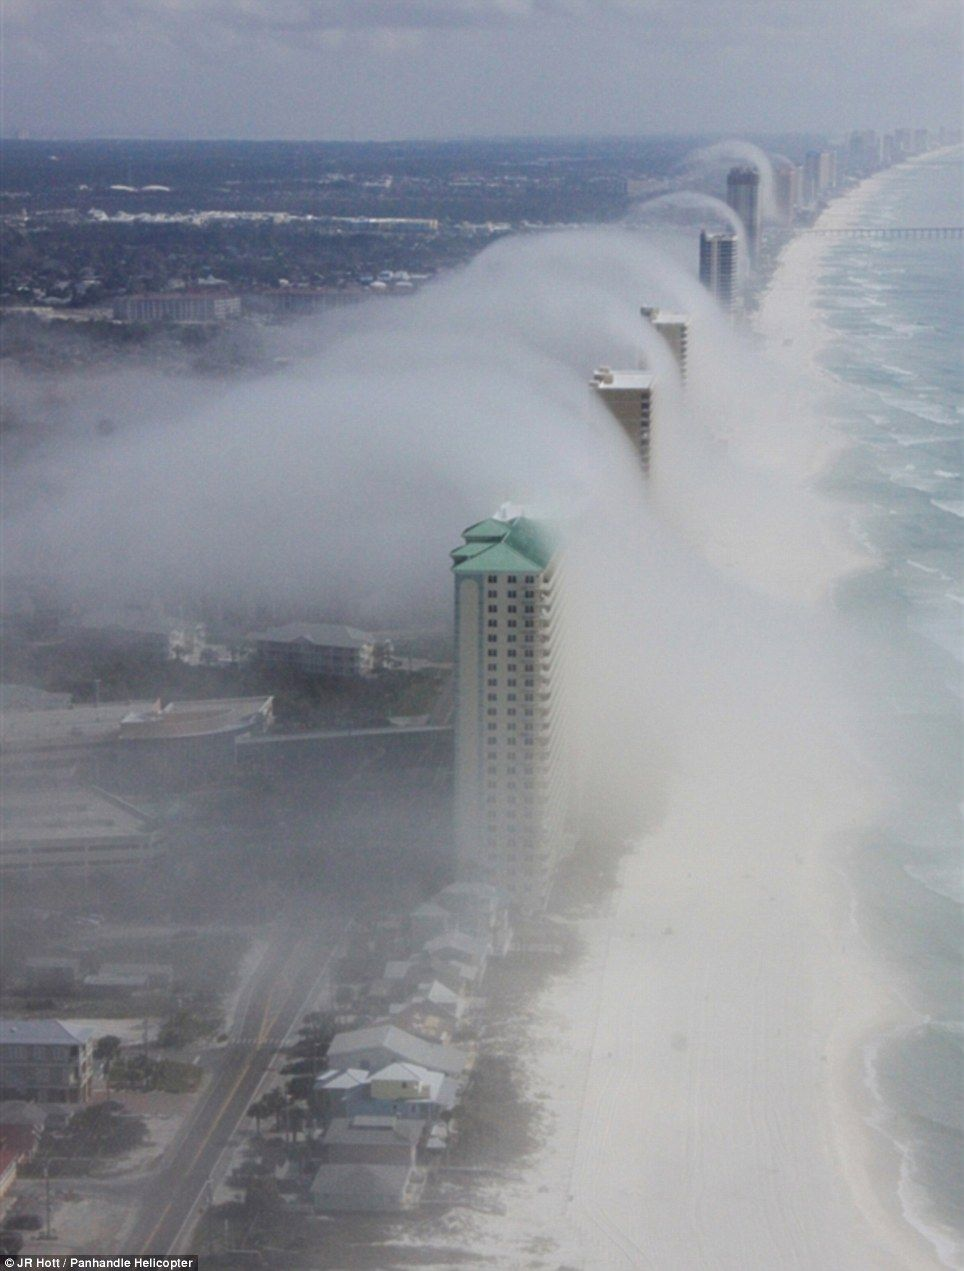 Incredible tsunami 'wave cloud' that rolled in from the